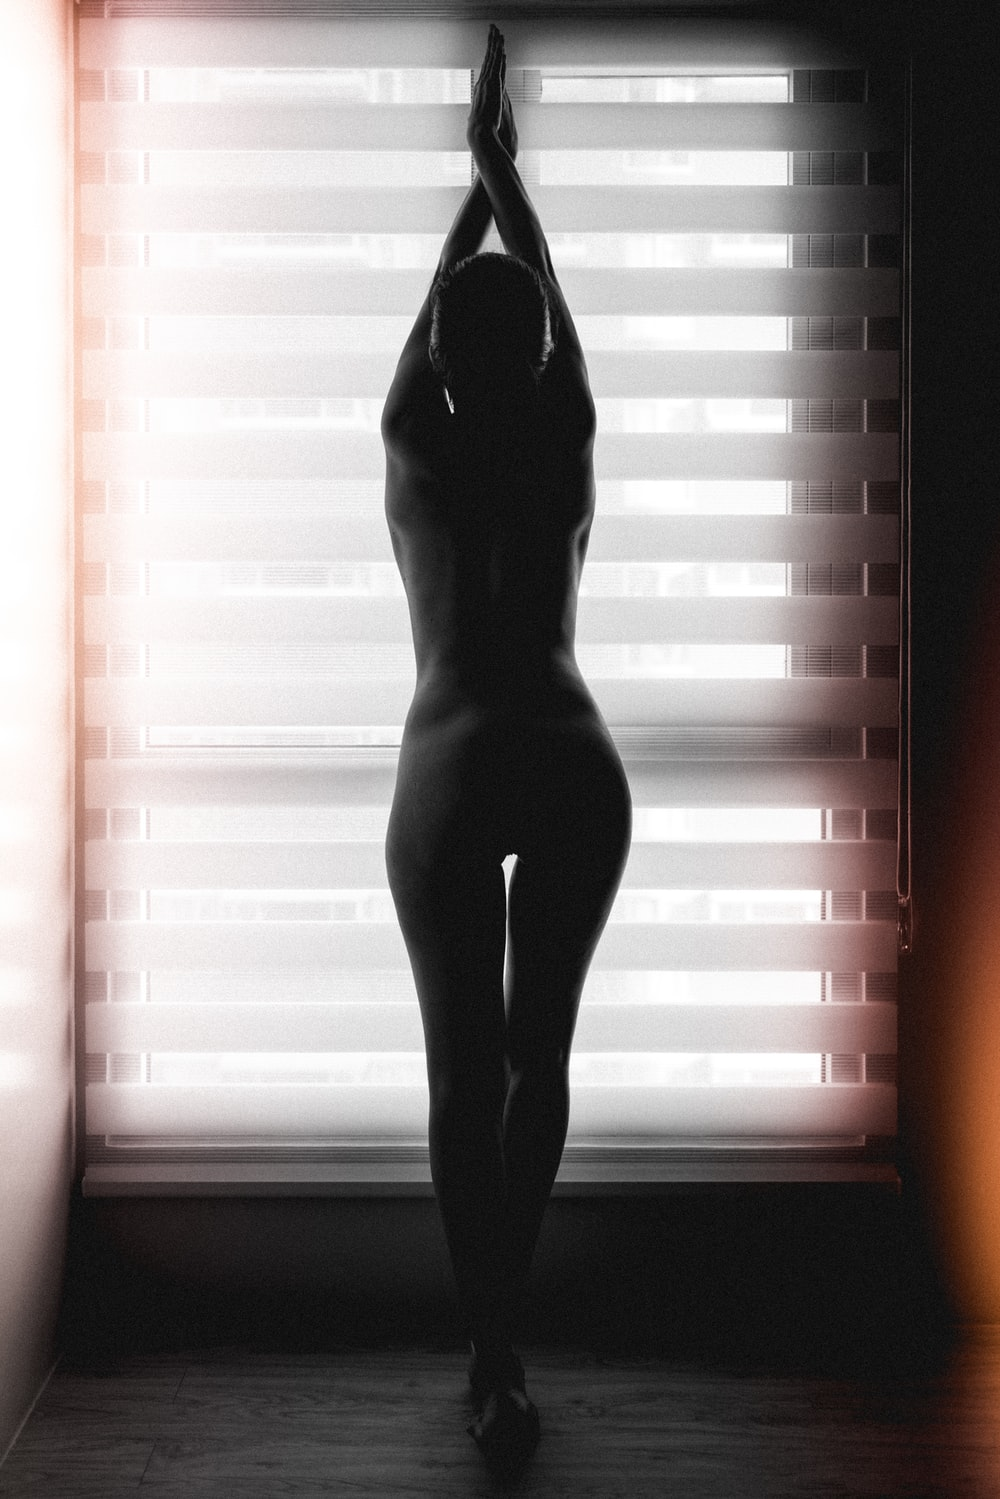 woman in black stockings standing by the window